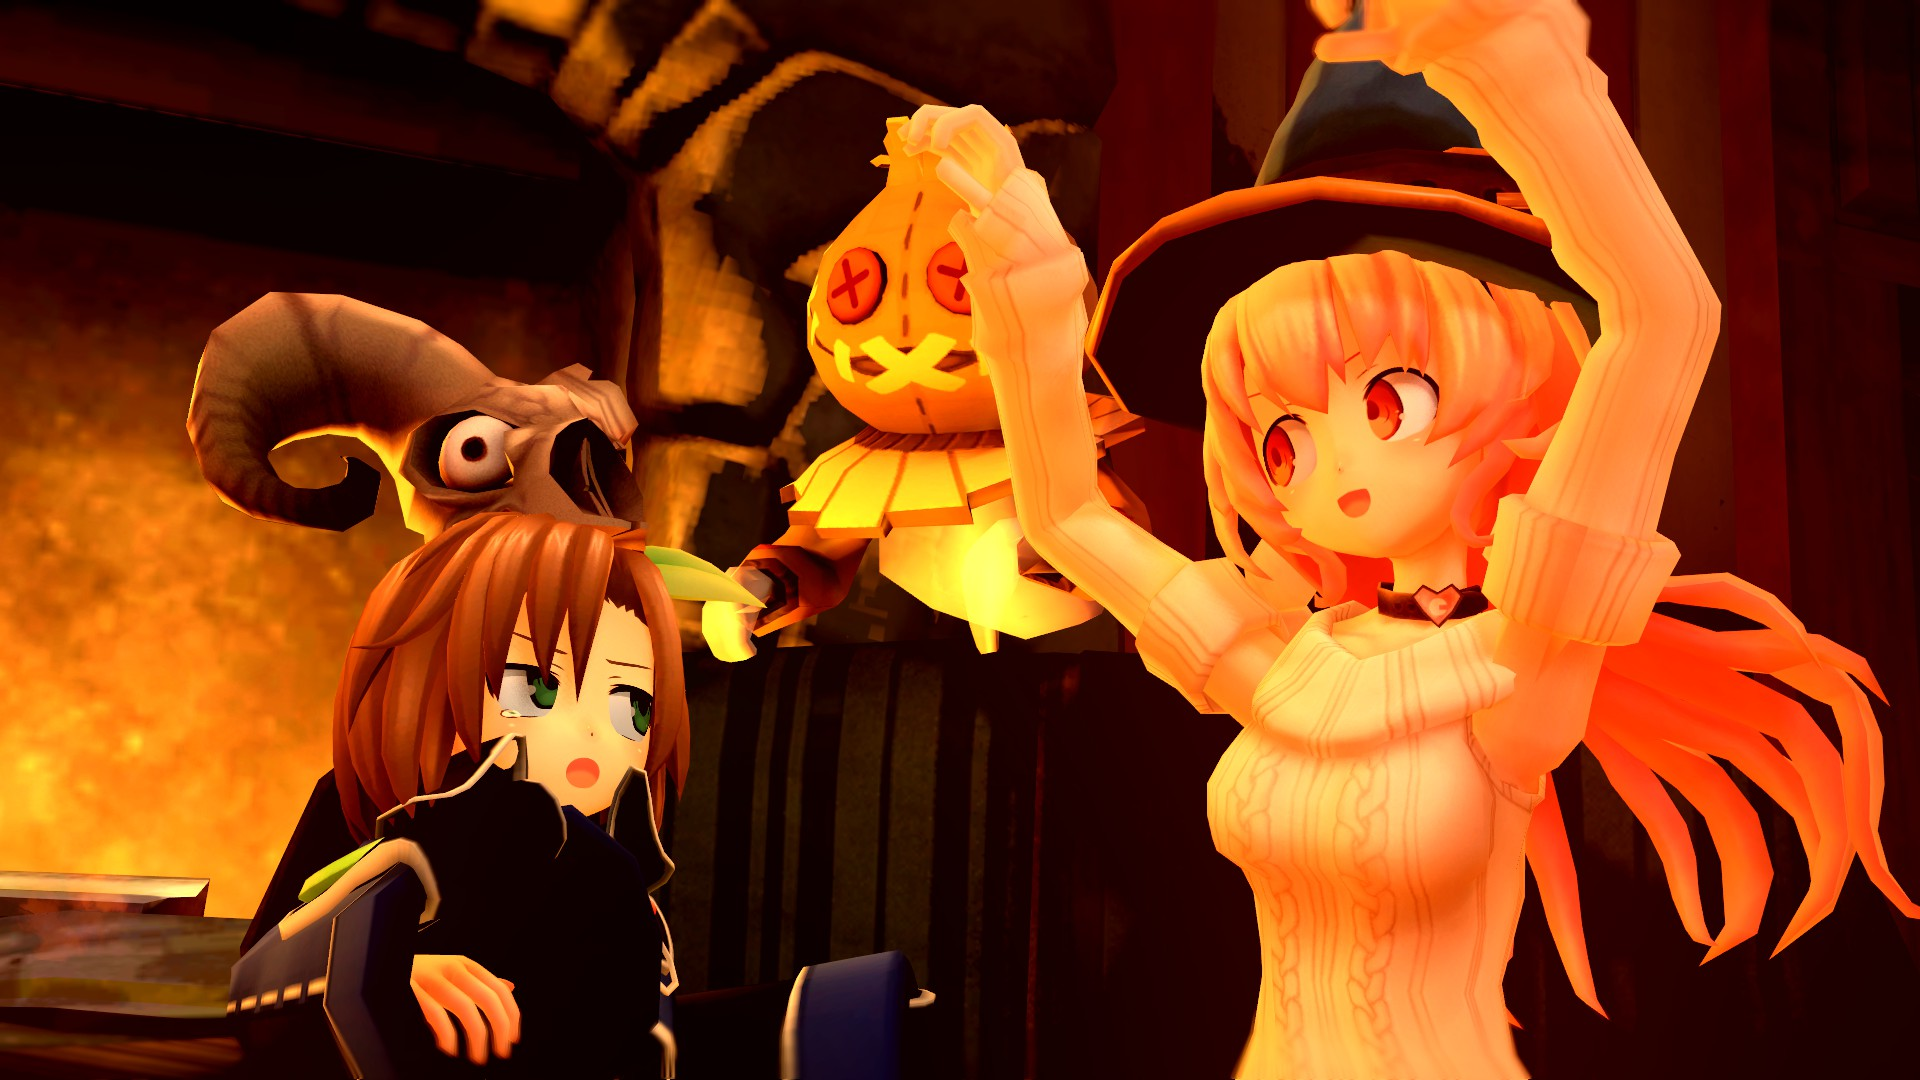 compa s scary halloween stories by gordonfr 17 on compa s scary halloween stories by gordonfr 17 compa s scary halloween stories by gordonfr 17